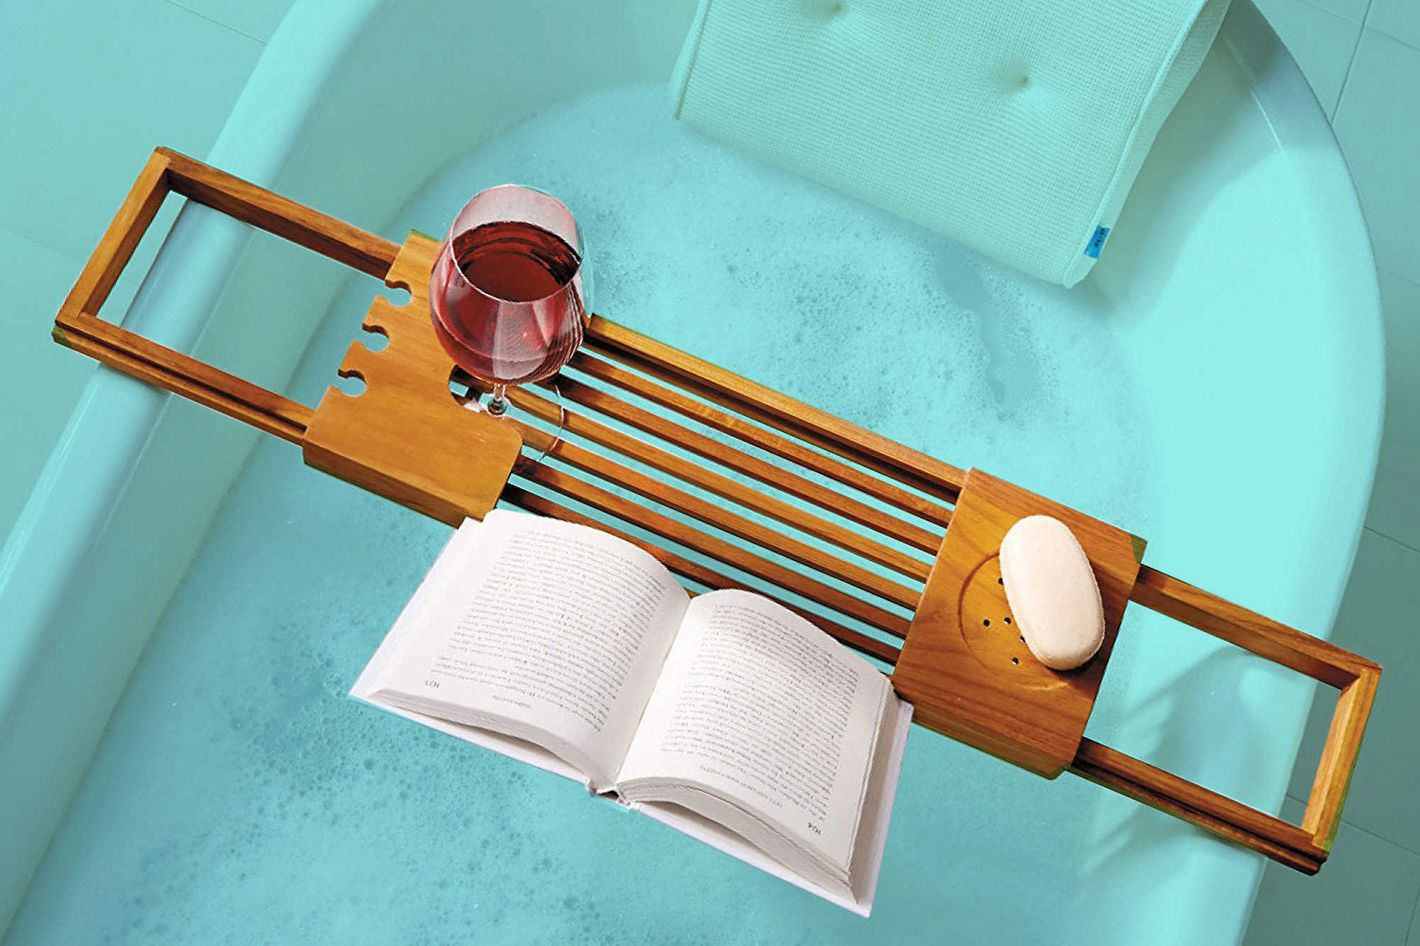 Teak Bathtub Water Resistant Tray Caddy